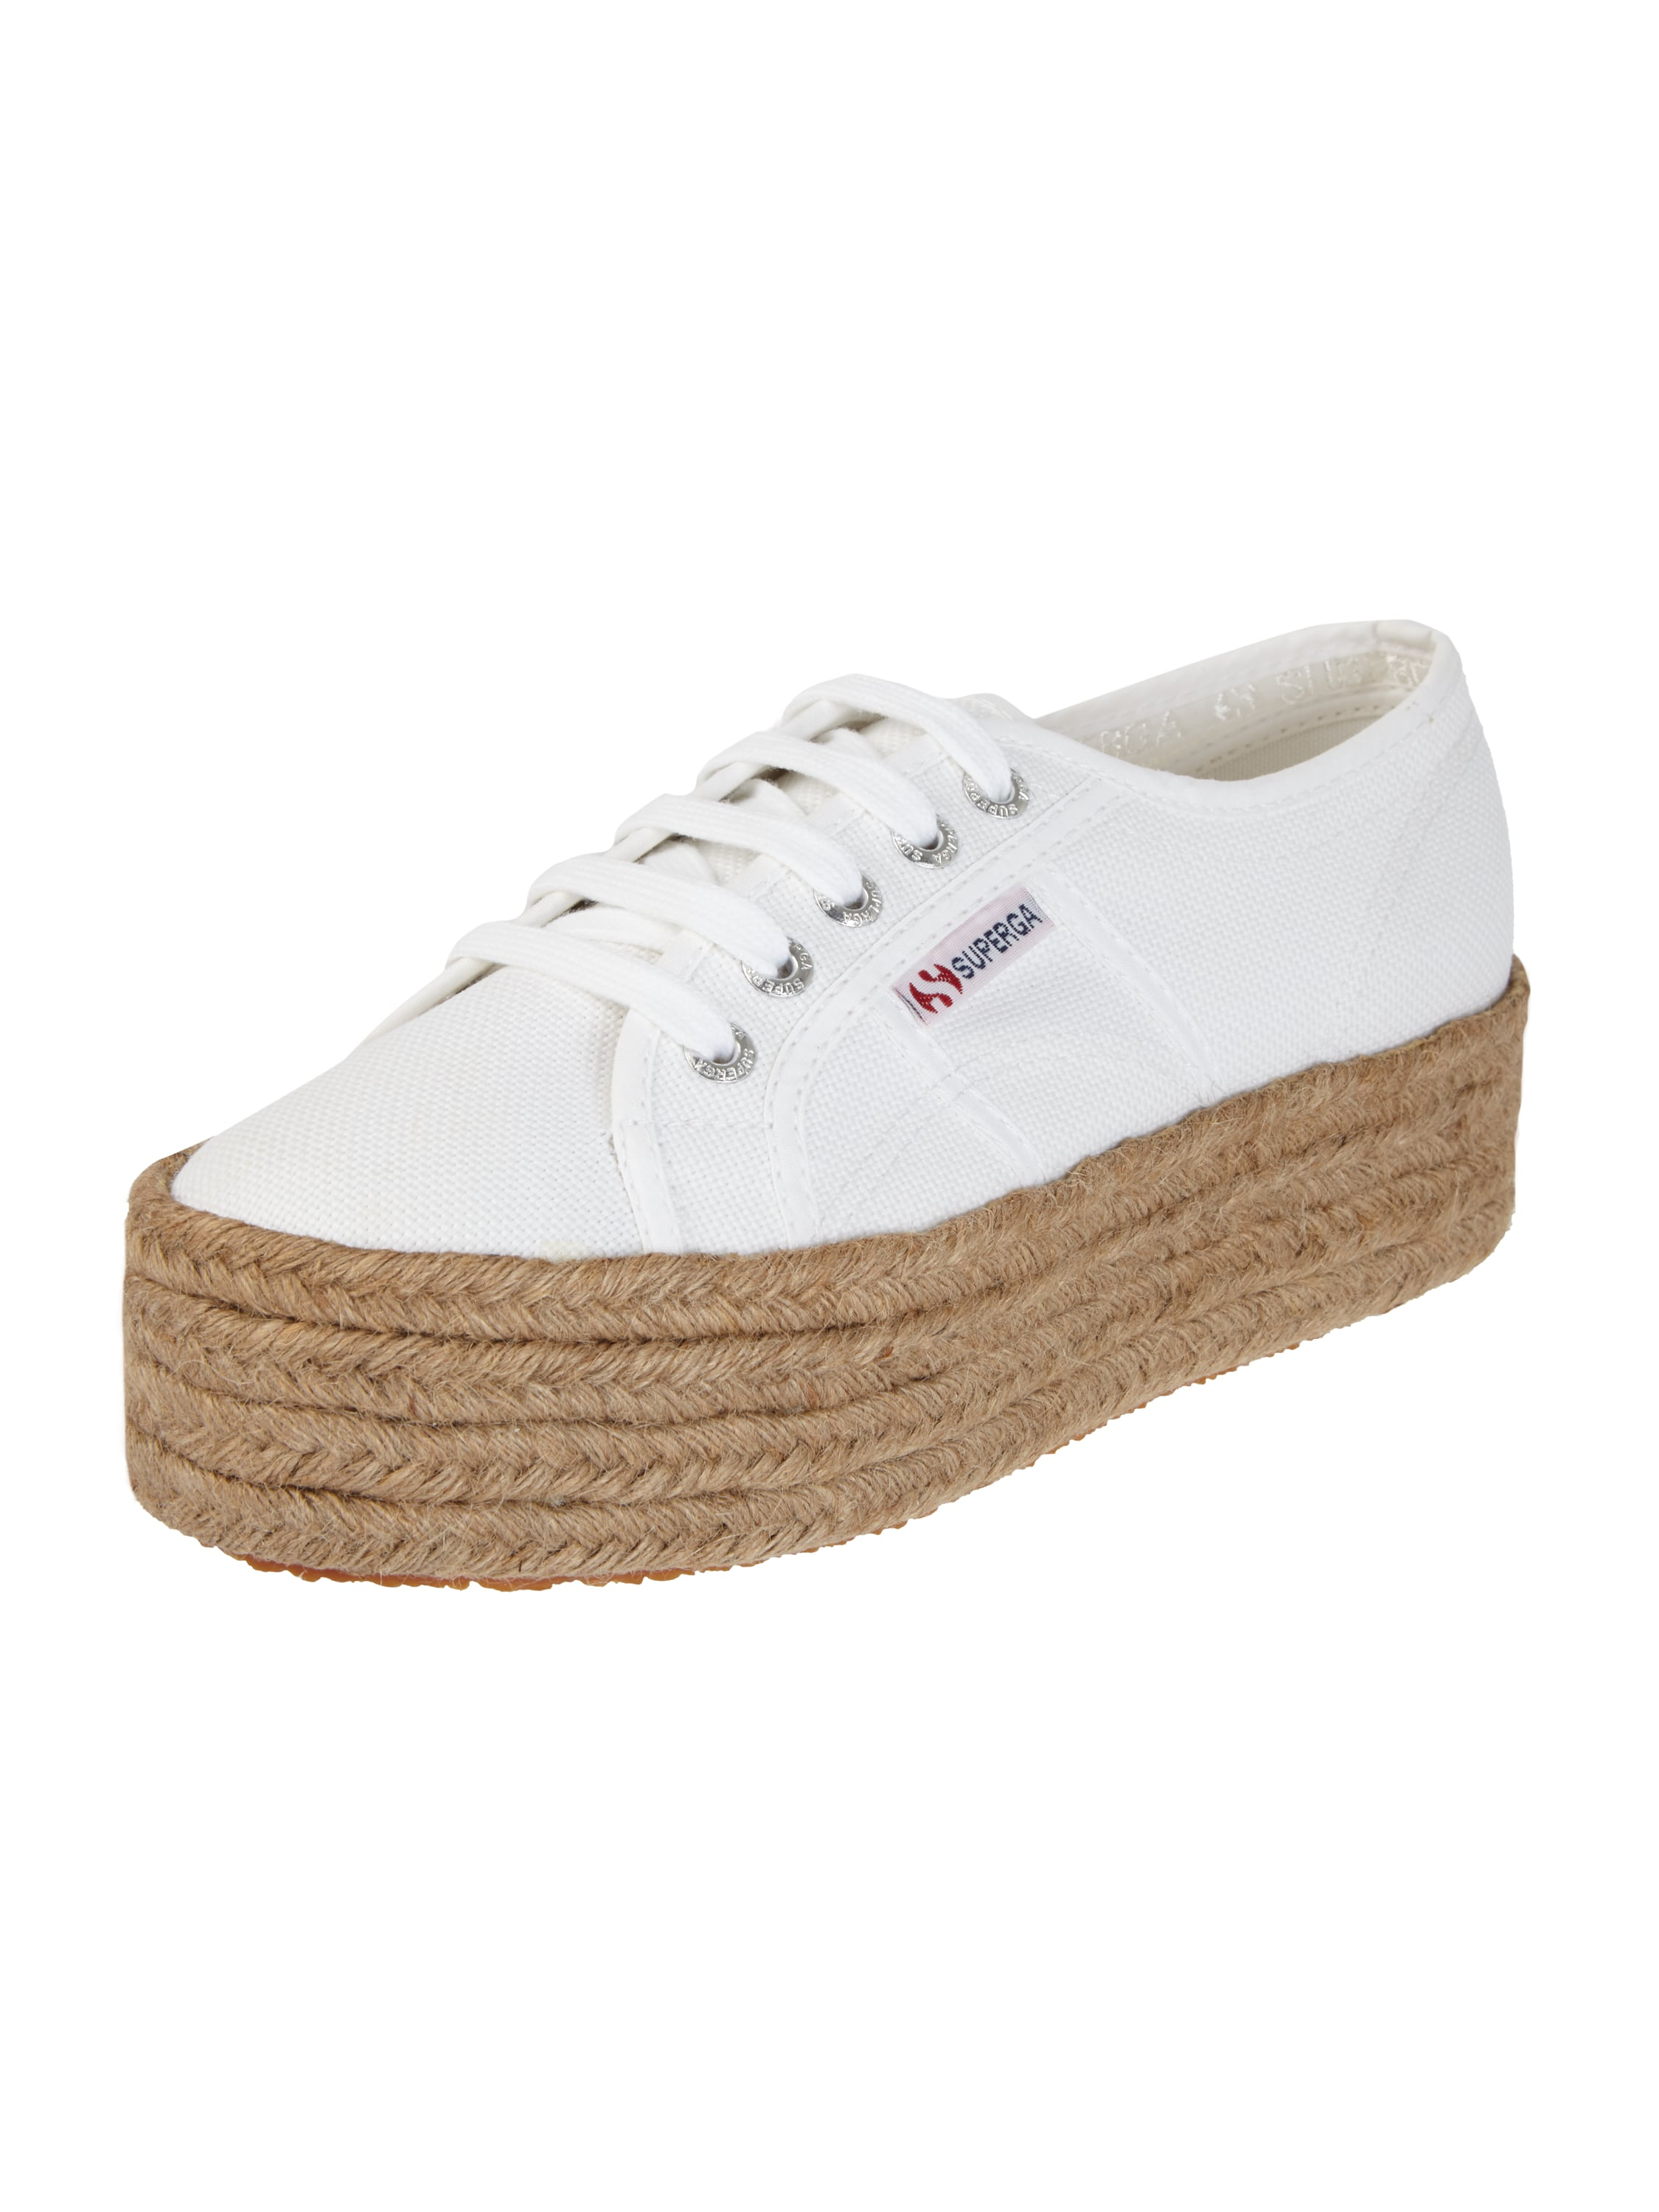 superga plateau sneaker aus canvas in wei online kaufen 9613092 p c online shop. Black Bedroom Furniture Sets. Home Design Ideas